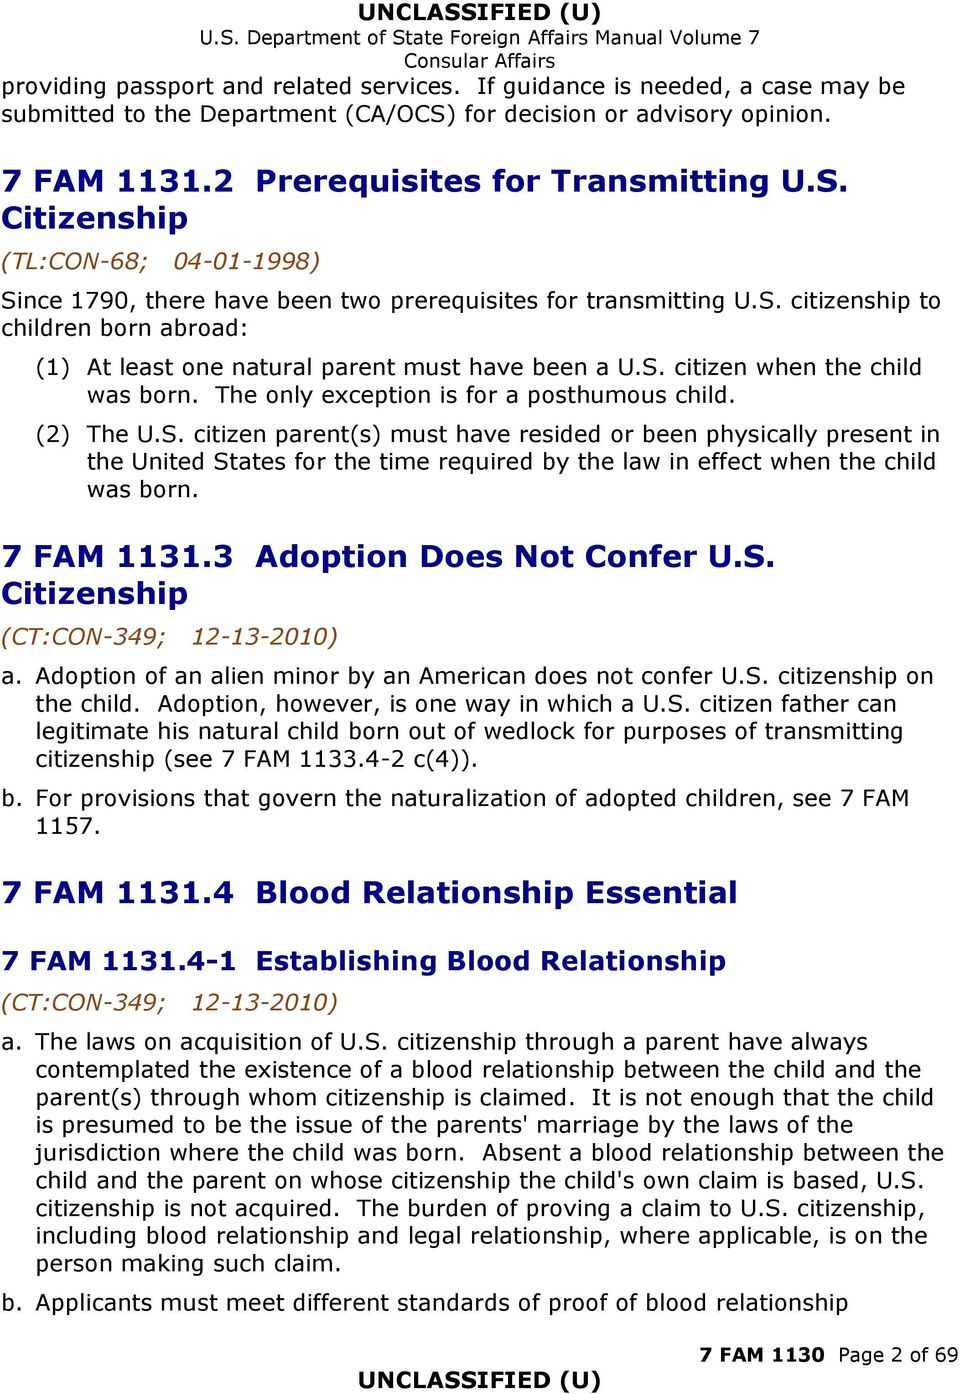 7 FAM 1131.3 Adoption Does Not Confer U.S. Citizenship (CT:CON-349; 12-13-2010) a. Adoption of an alien minor by an American does not confer U.S. citizenship on the child.